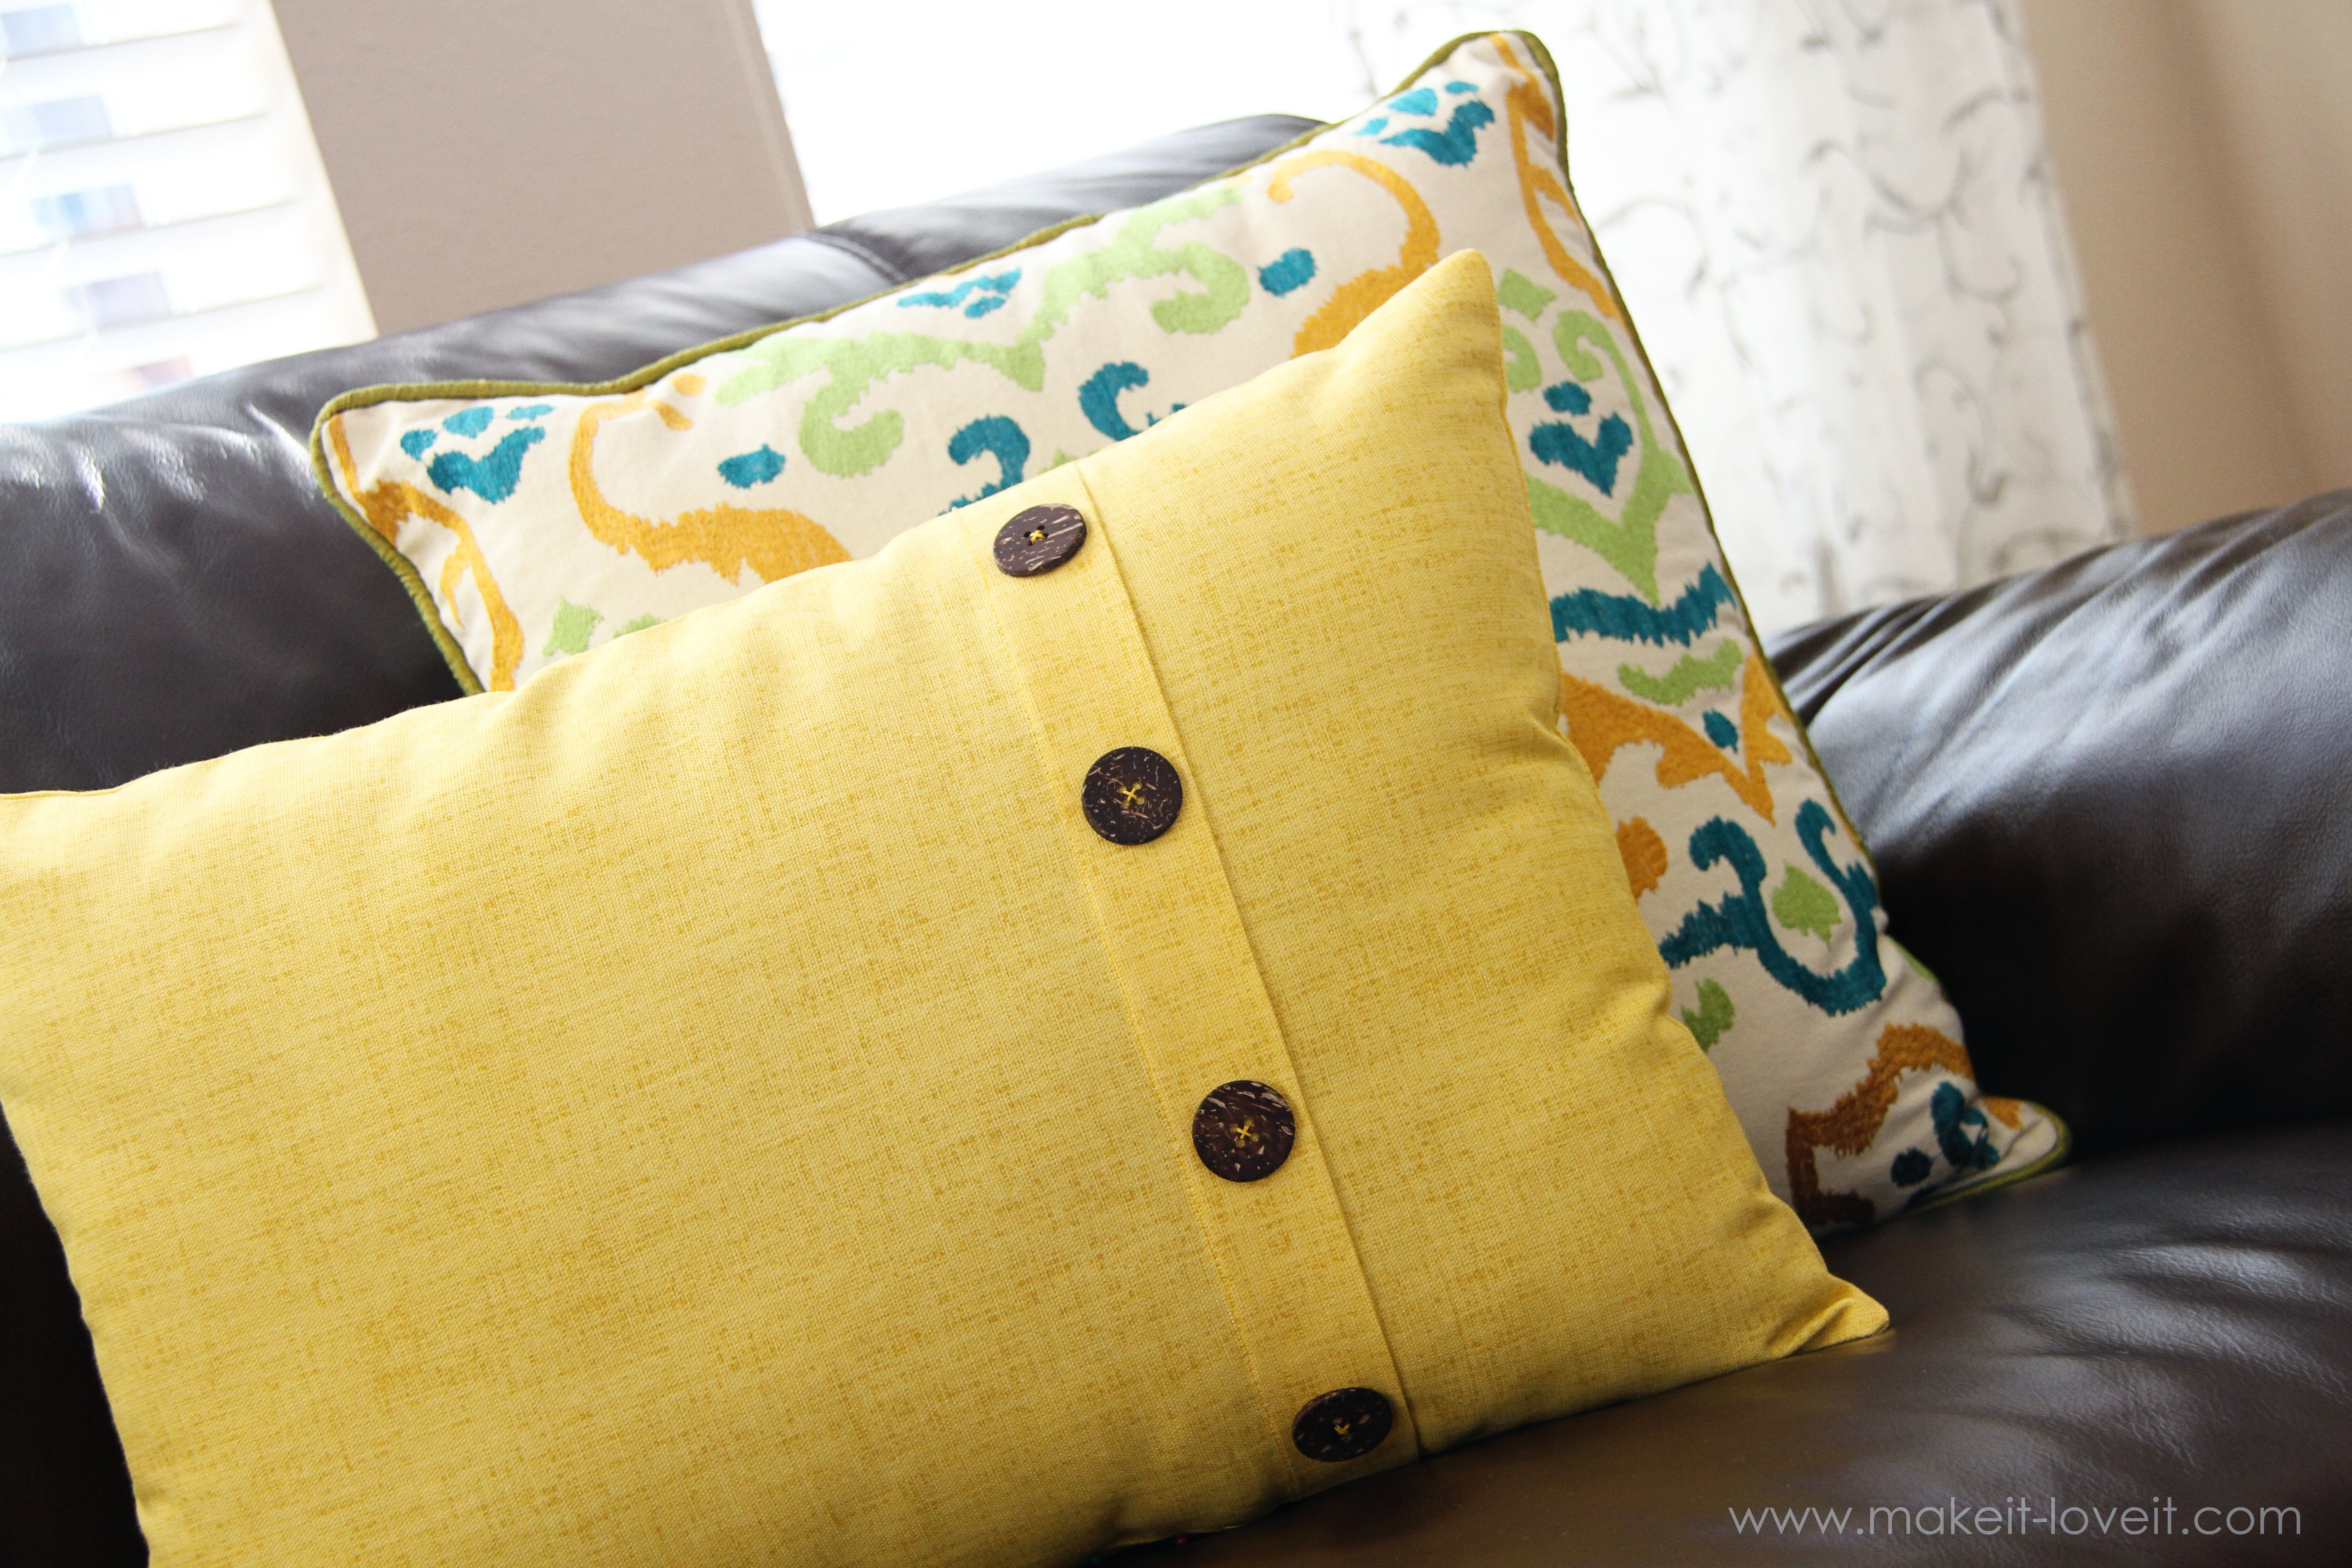 Note: After adding the stitches or buttons, you can't remove the cushion inserts unless you re-do the tufting after cleaning the cushion covers. This is the loveseat with plain back cushions.